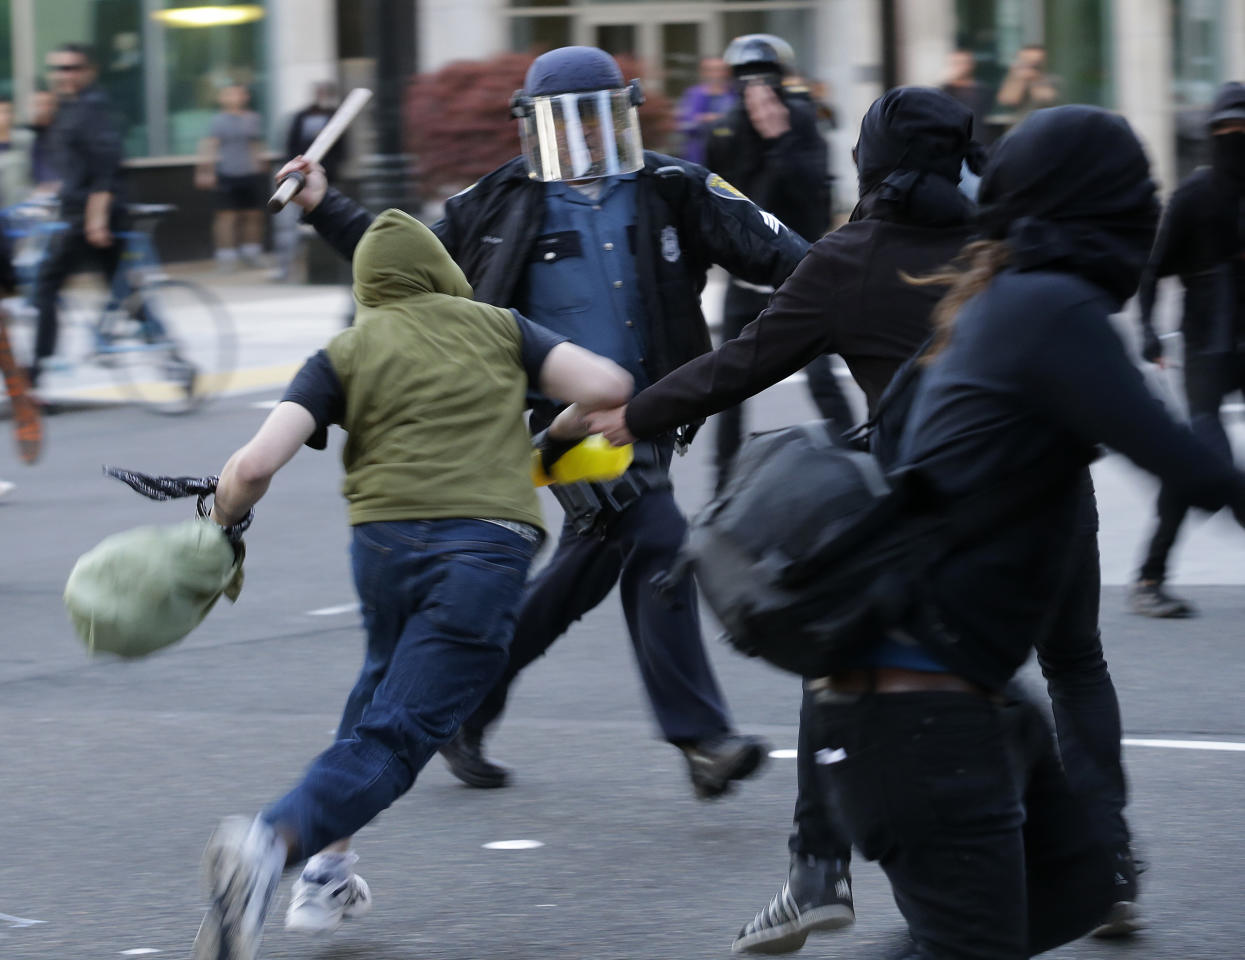 A Seattle Police officer swings his baton at protesters during a May Day march that began as an anti-capitalism protest and turned into demonstrators clashing with police, Wednesday, May 1, 2013, in downtown Seattle. (AP Photo/Ted S. Warren)